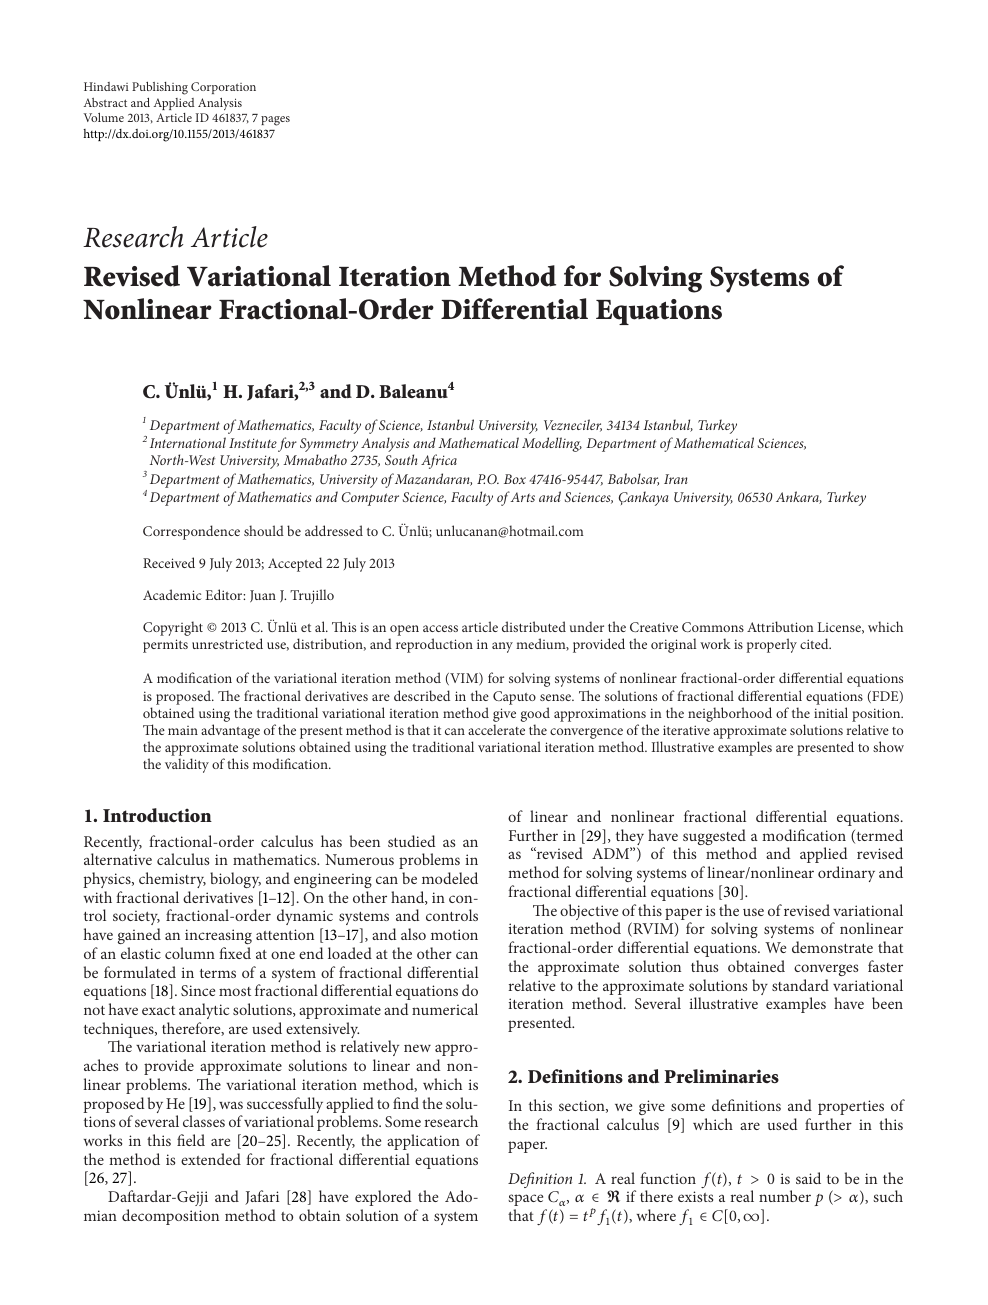 Revised Variational Iteration Method for Solving Systems of